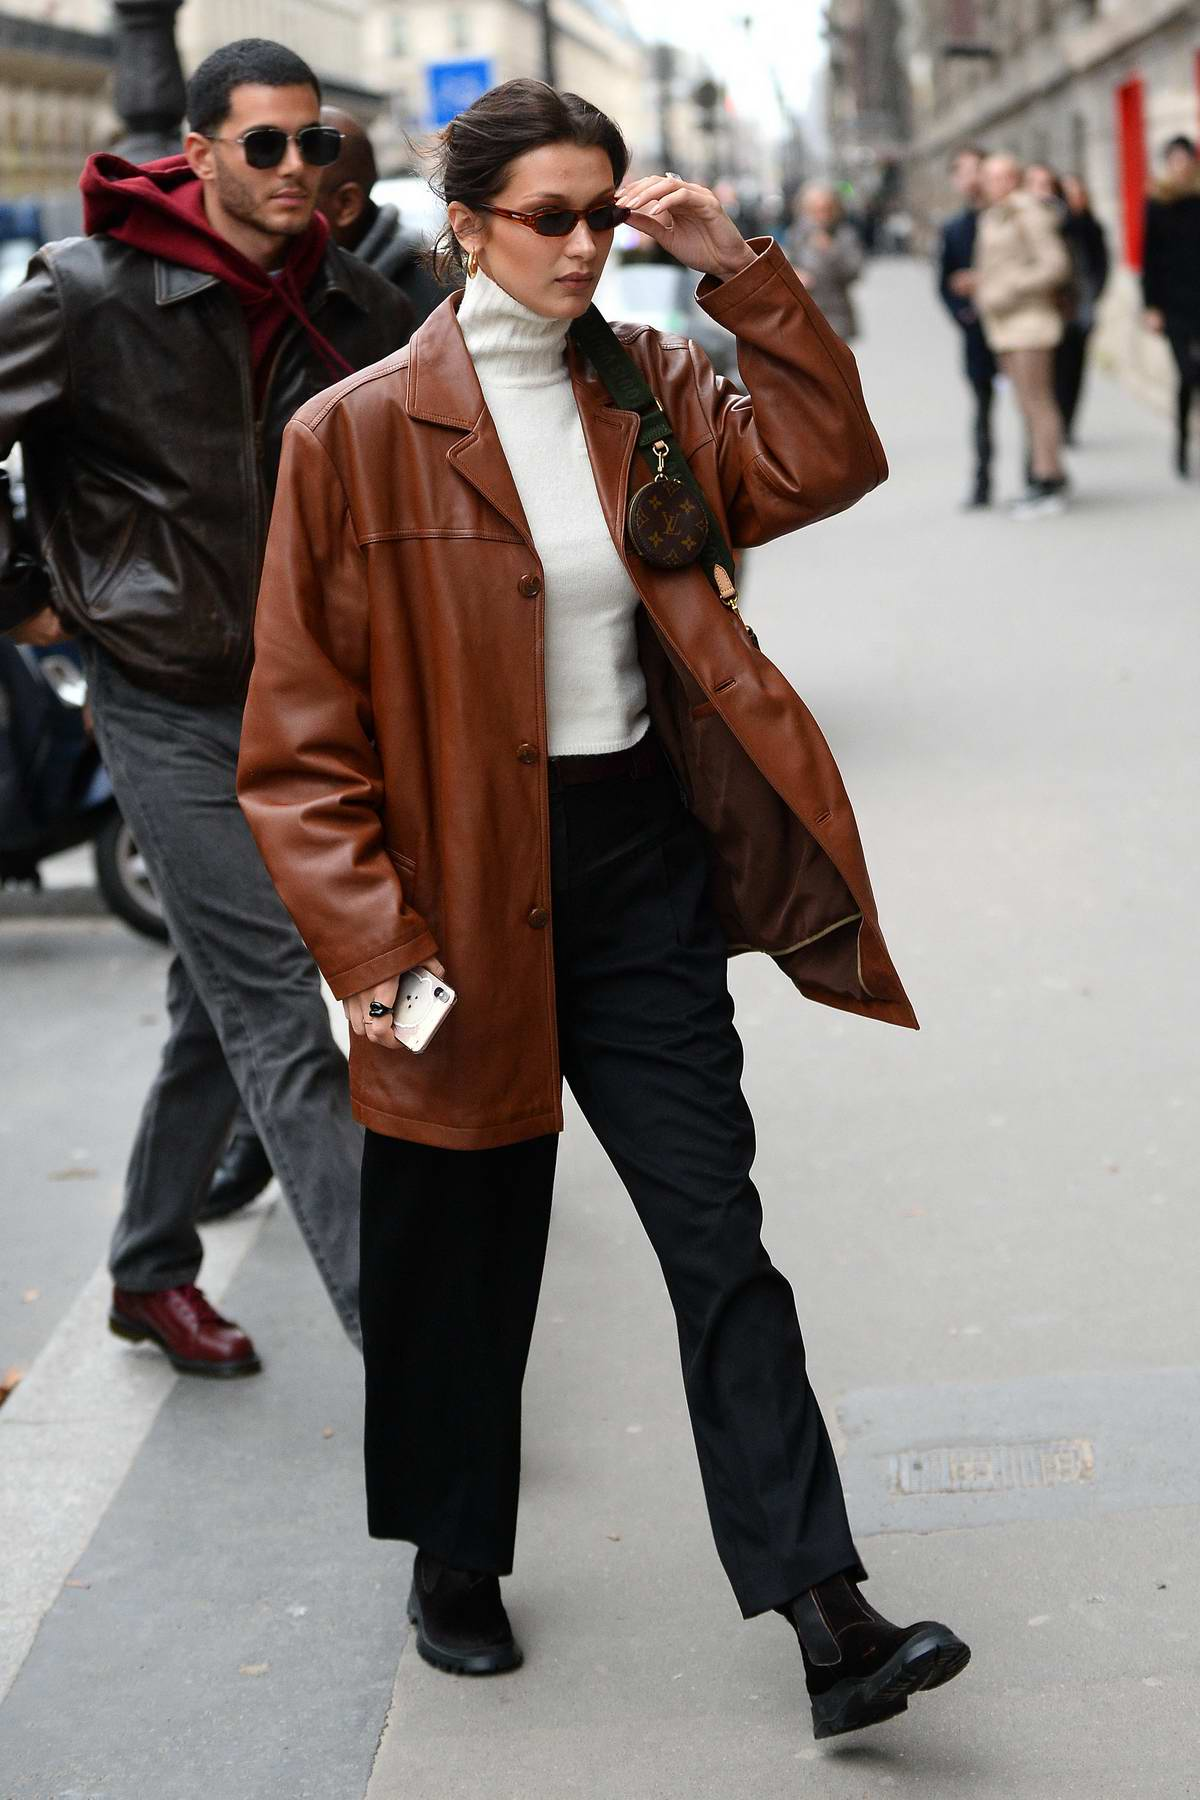 Bella Hadid looks stylish in a brown leather jacket as she heads to the Musee Des Arts in Paris, France